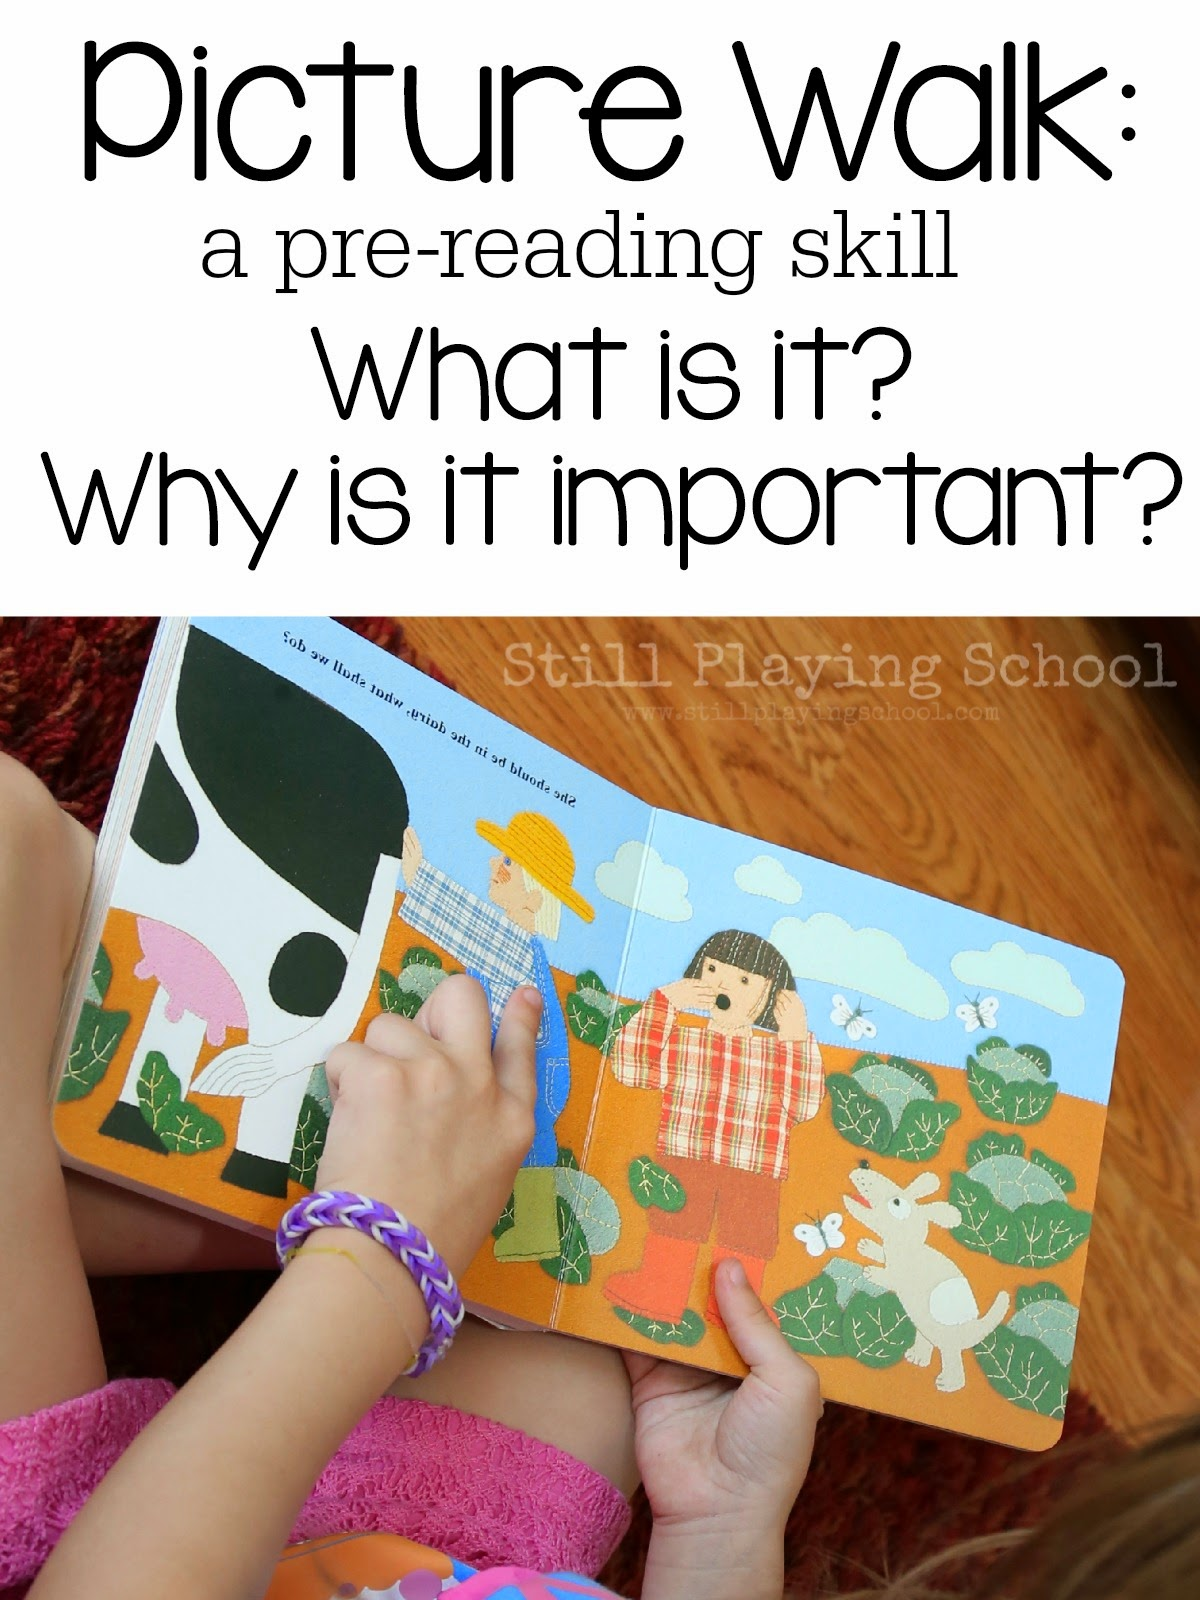 Worksheet Preschool Pre Reading Activities picture walk preview for early readers still playing school readers